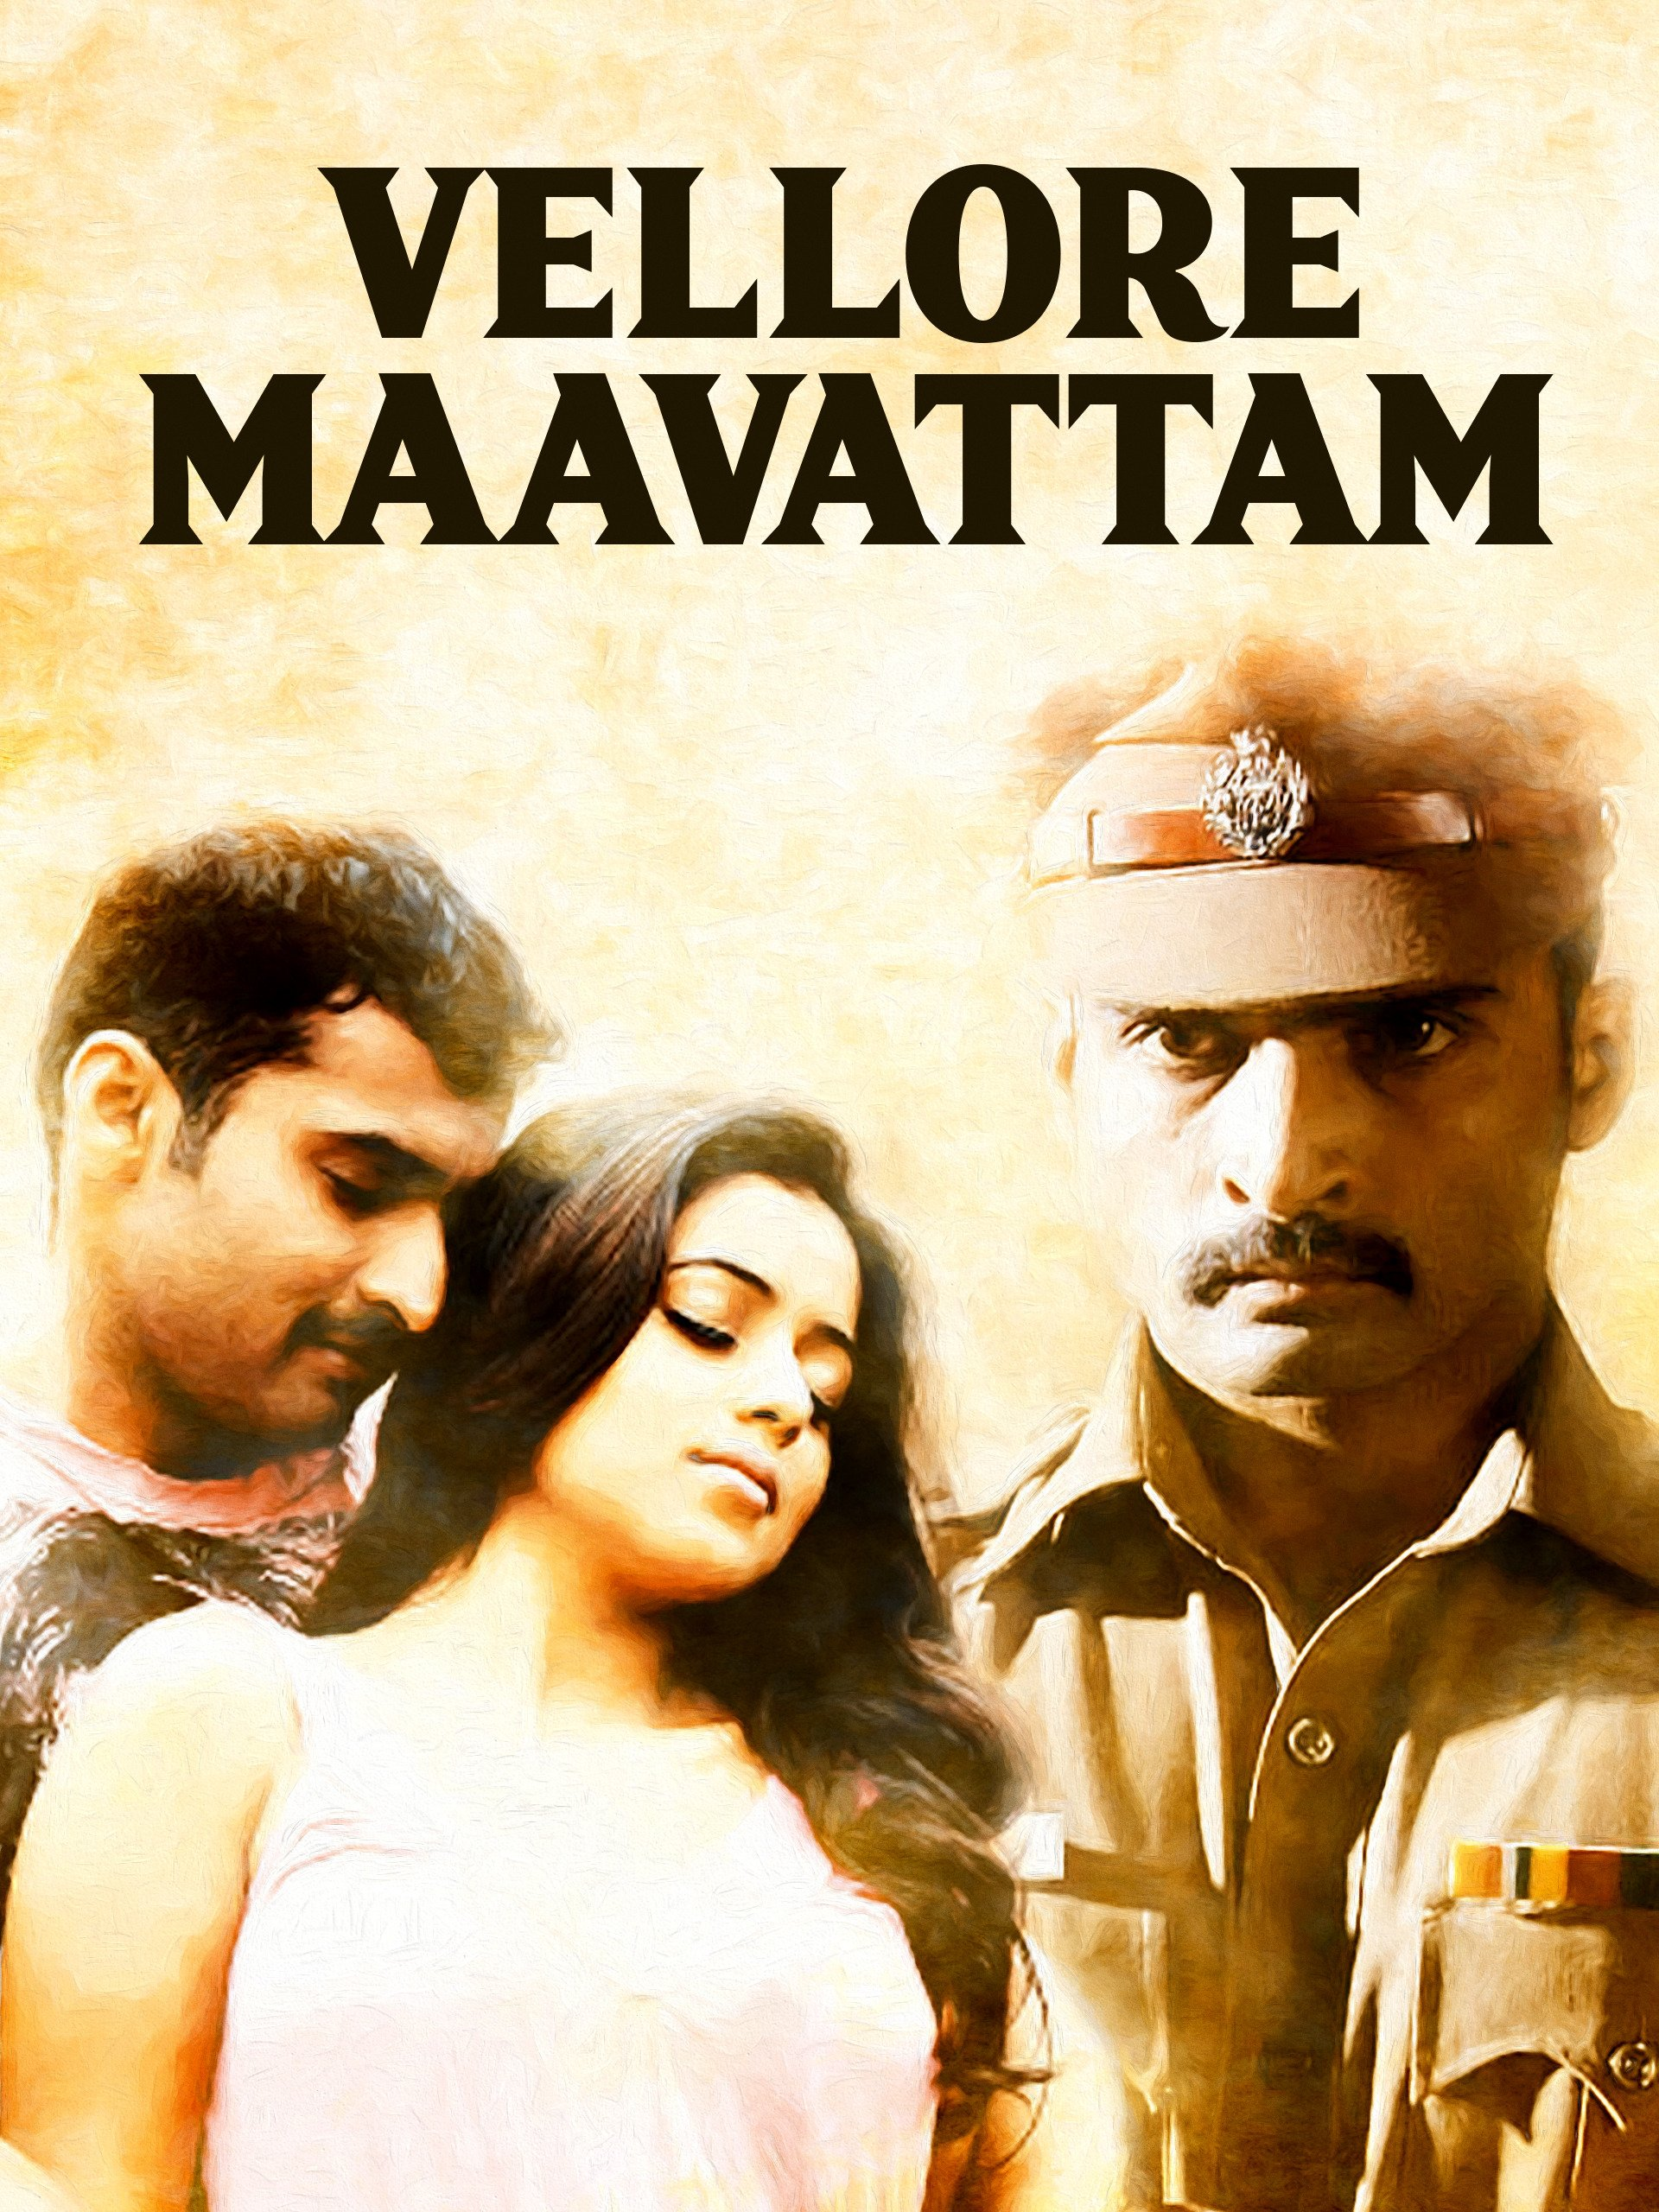 Vellore Maavattam 2020 Hindi Dubbed 340MB HDRip